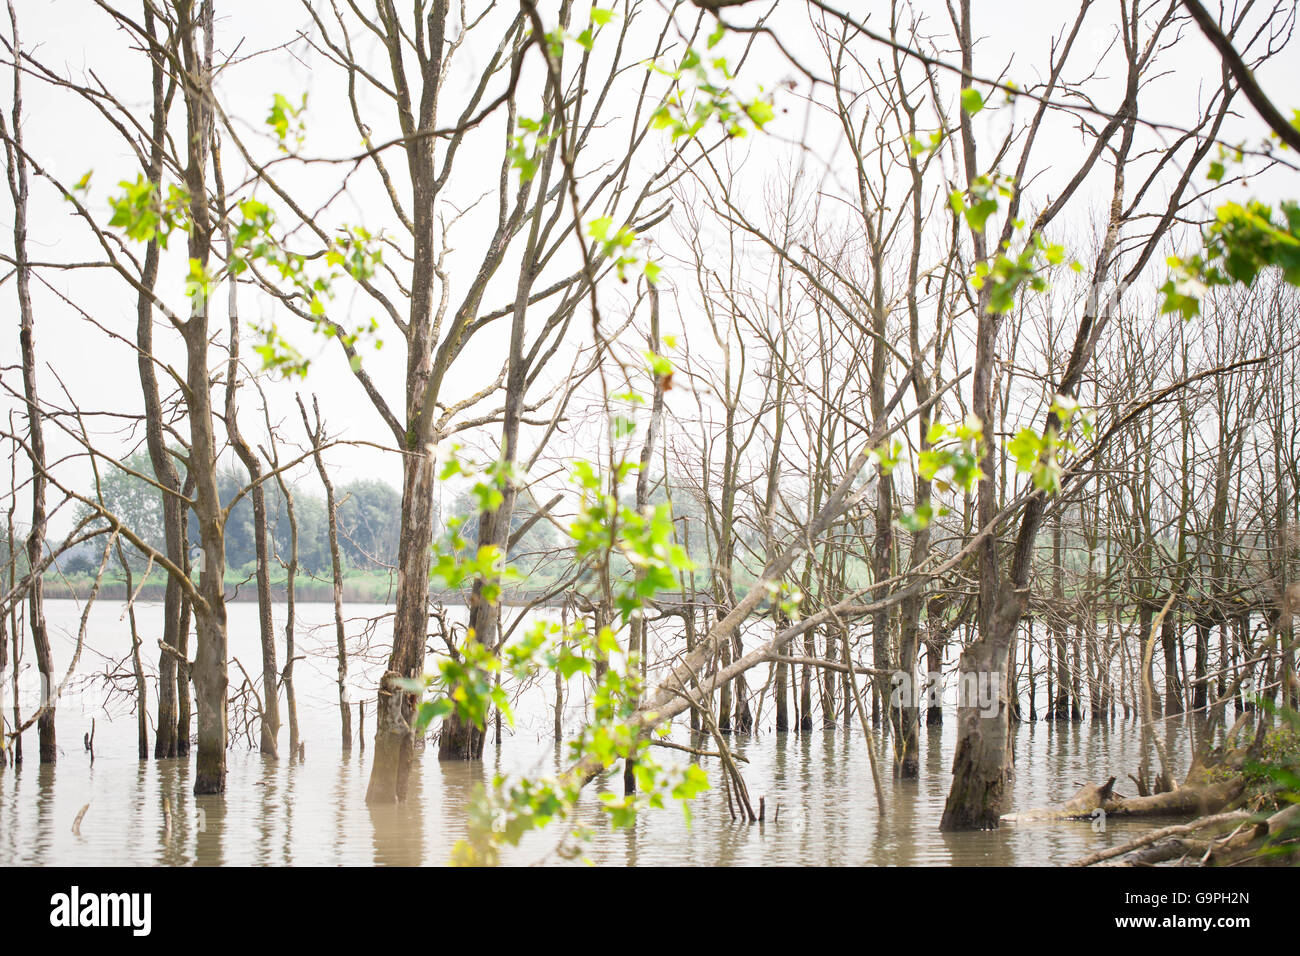 Lakeside trees coming out of the water - Stock Image